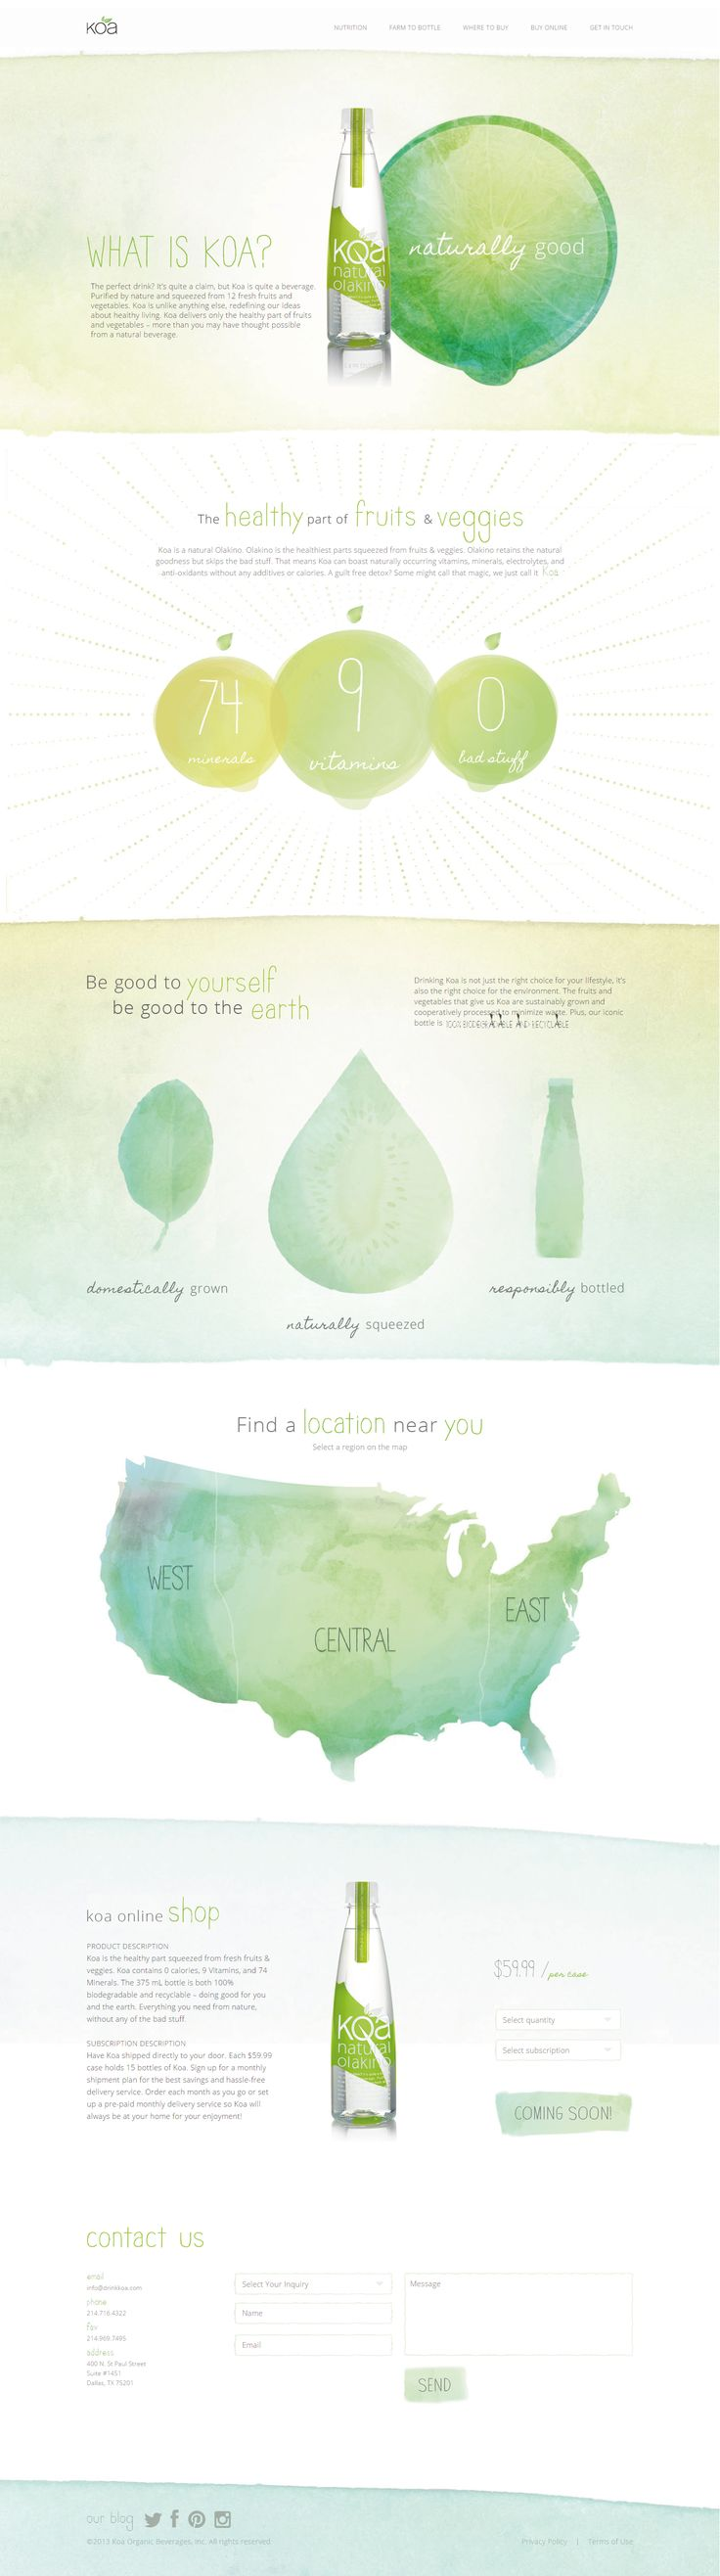 Unique Web Design, KOA Water http://www.drinkkoa.com/ by http://tractorbeam.com/ #Web #Design